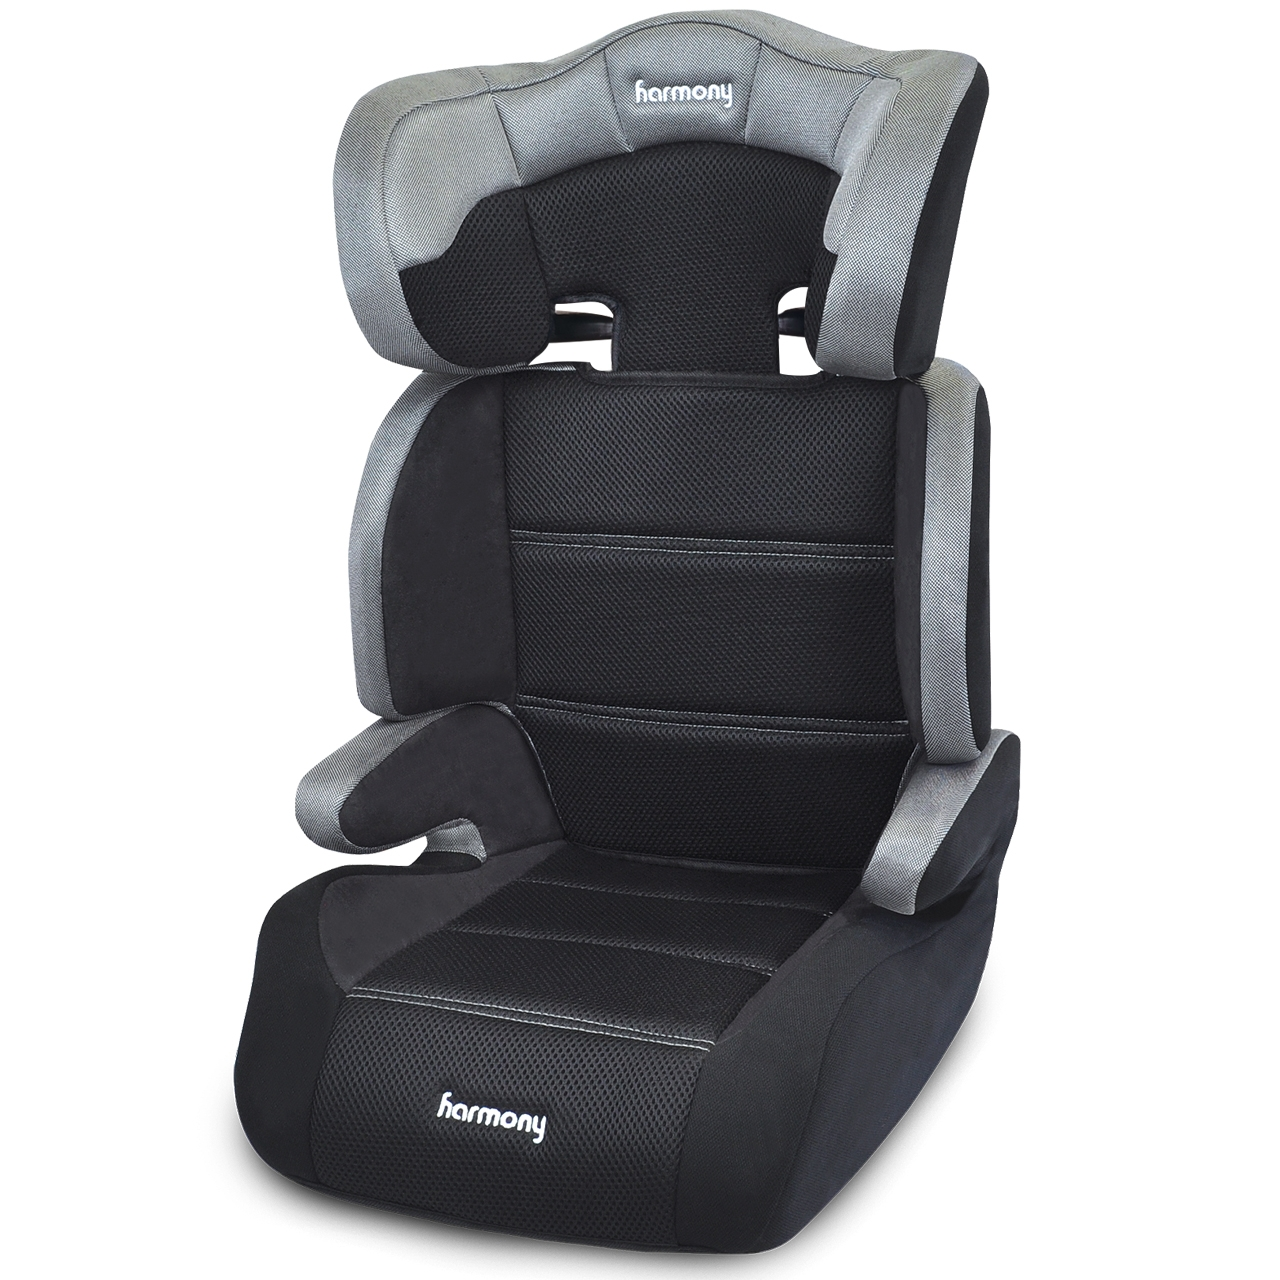 aab8c1c7e398 Merydian 2-in-1 Convertible Car Seat - Featured Products - Products